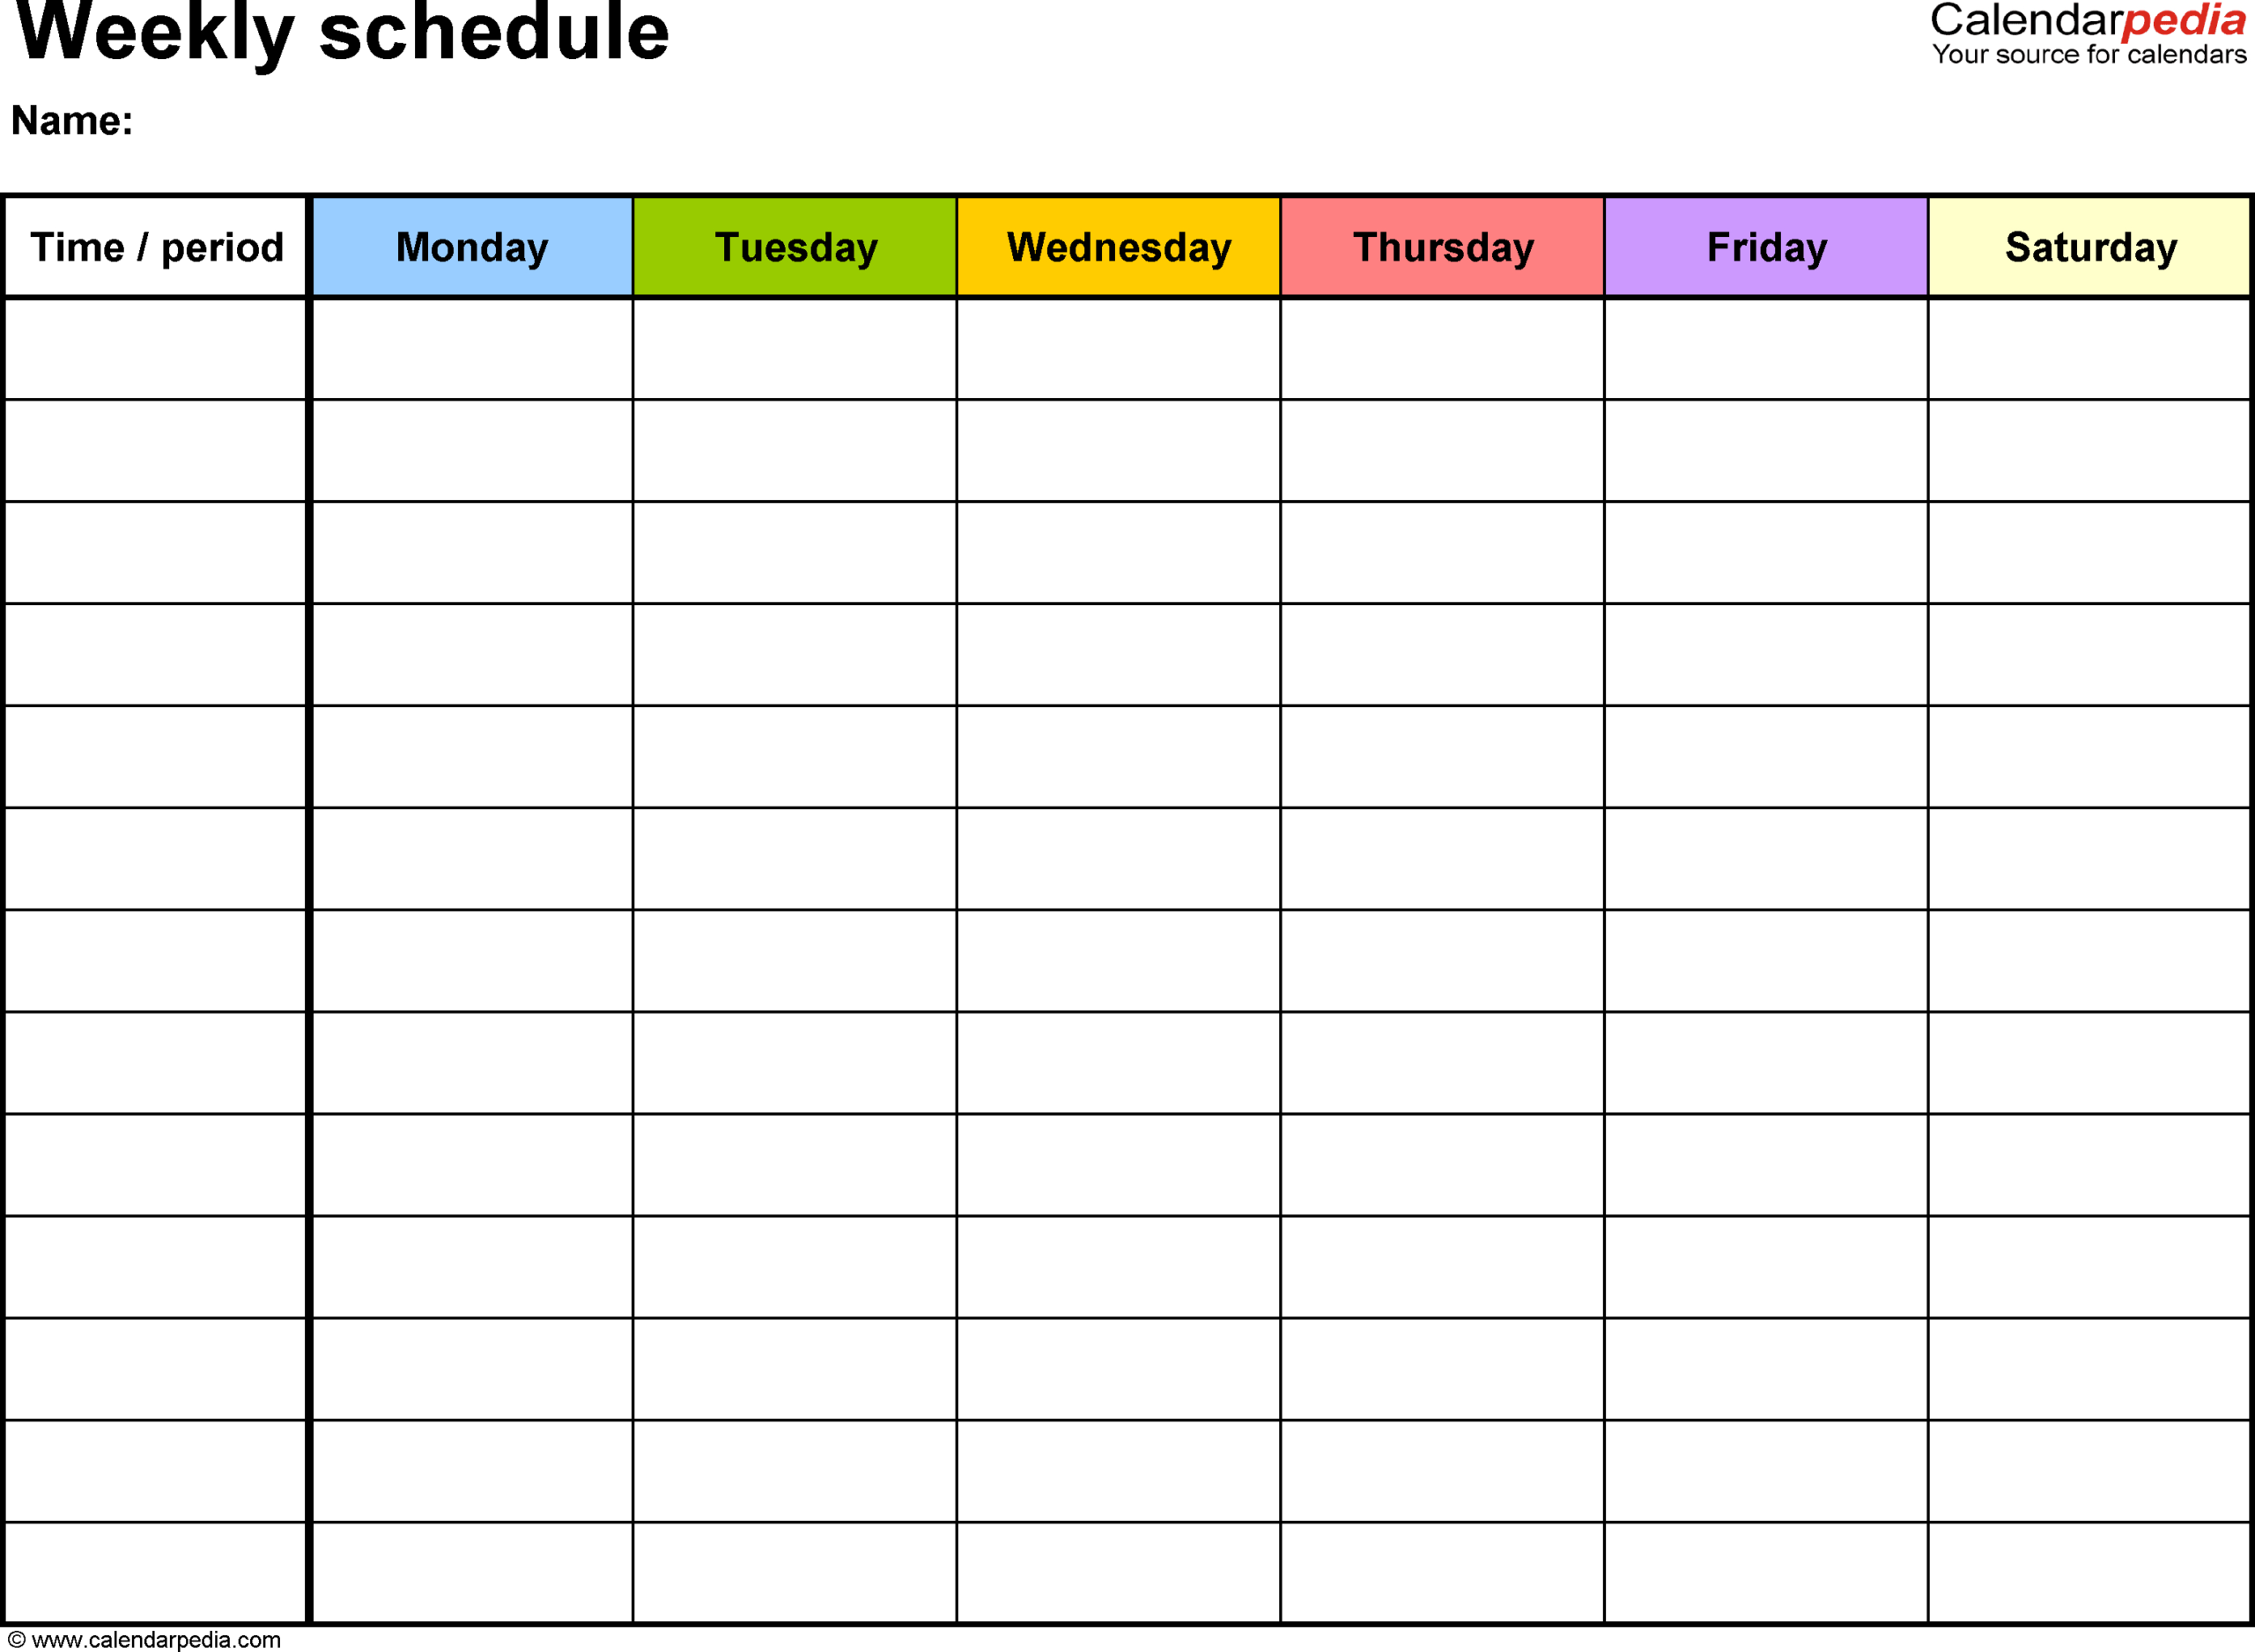 Printable Weekly Calendar With Time Slots | Calendar For for Calendar Template With Time Slots